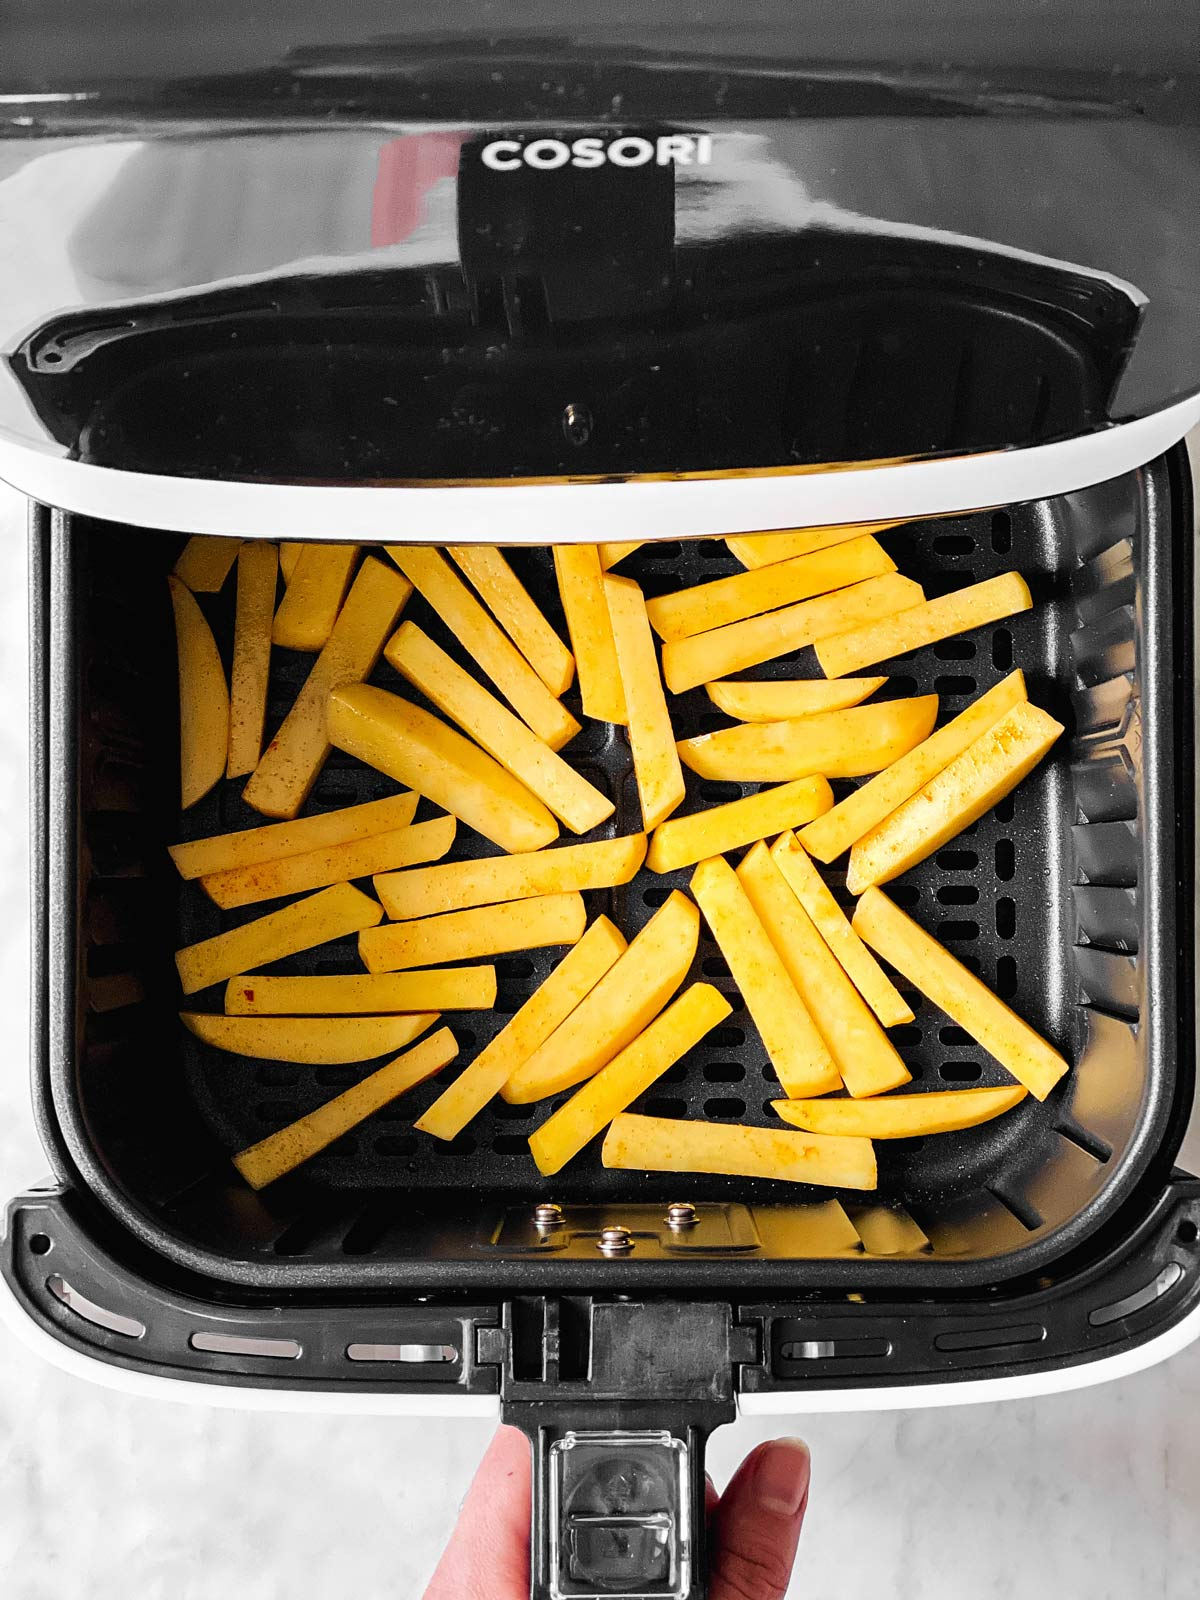 uncooked French fries in air fryer basket